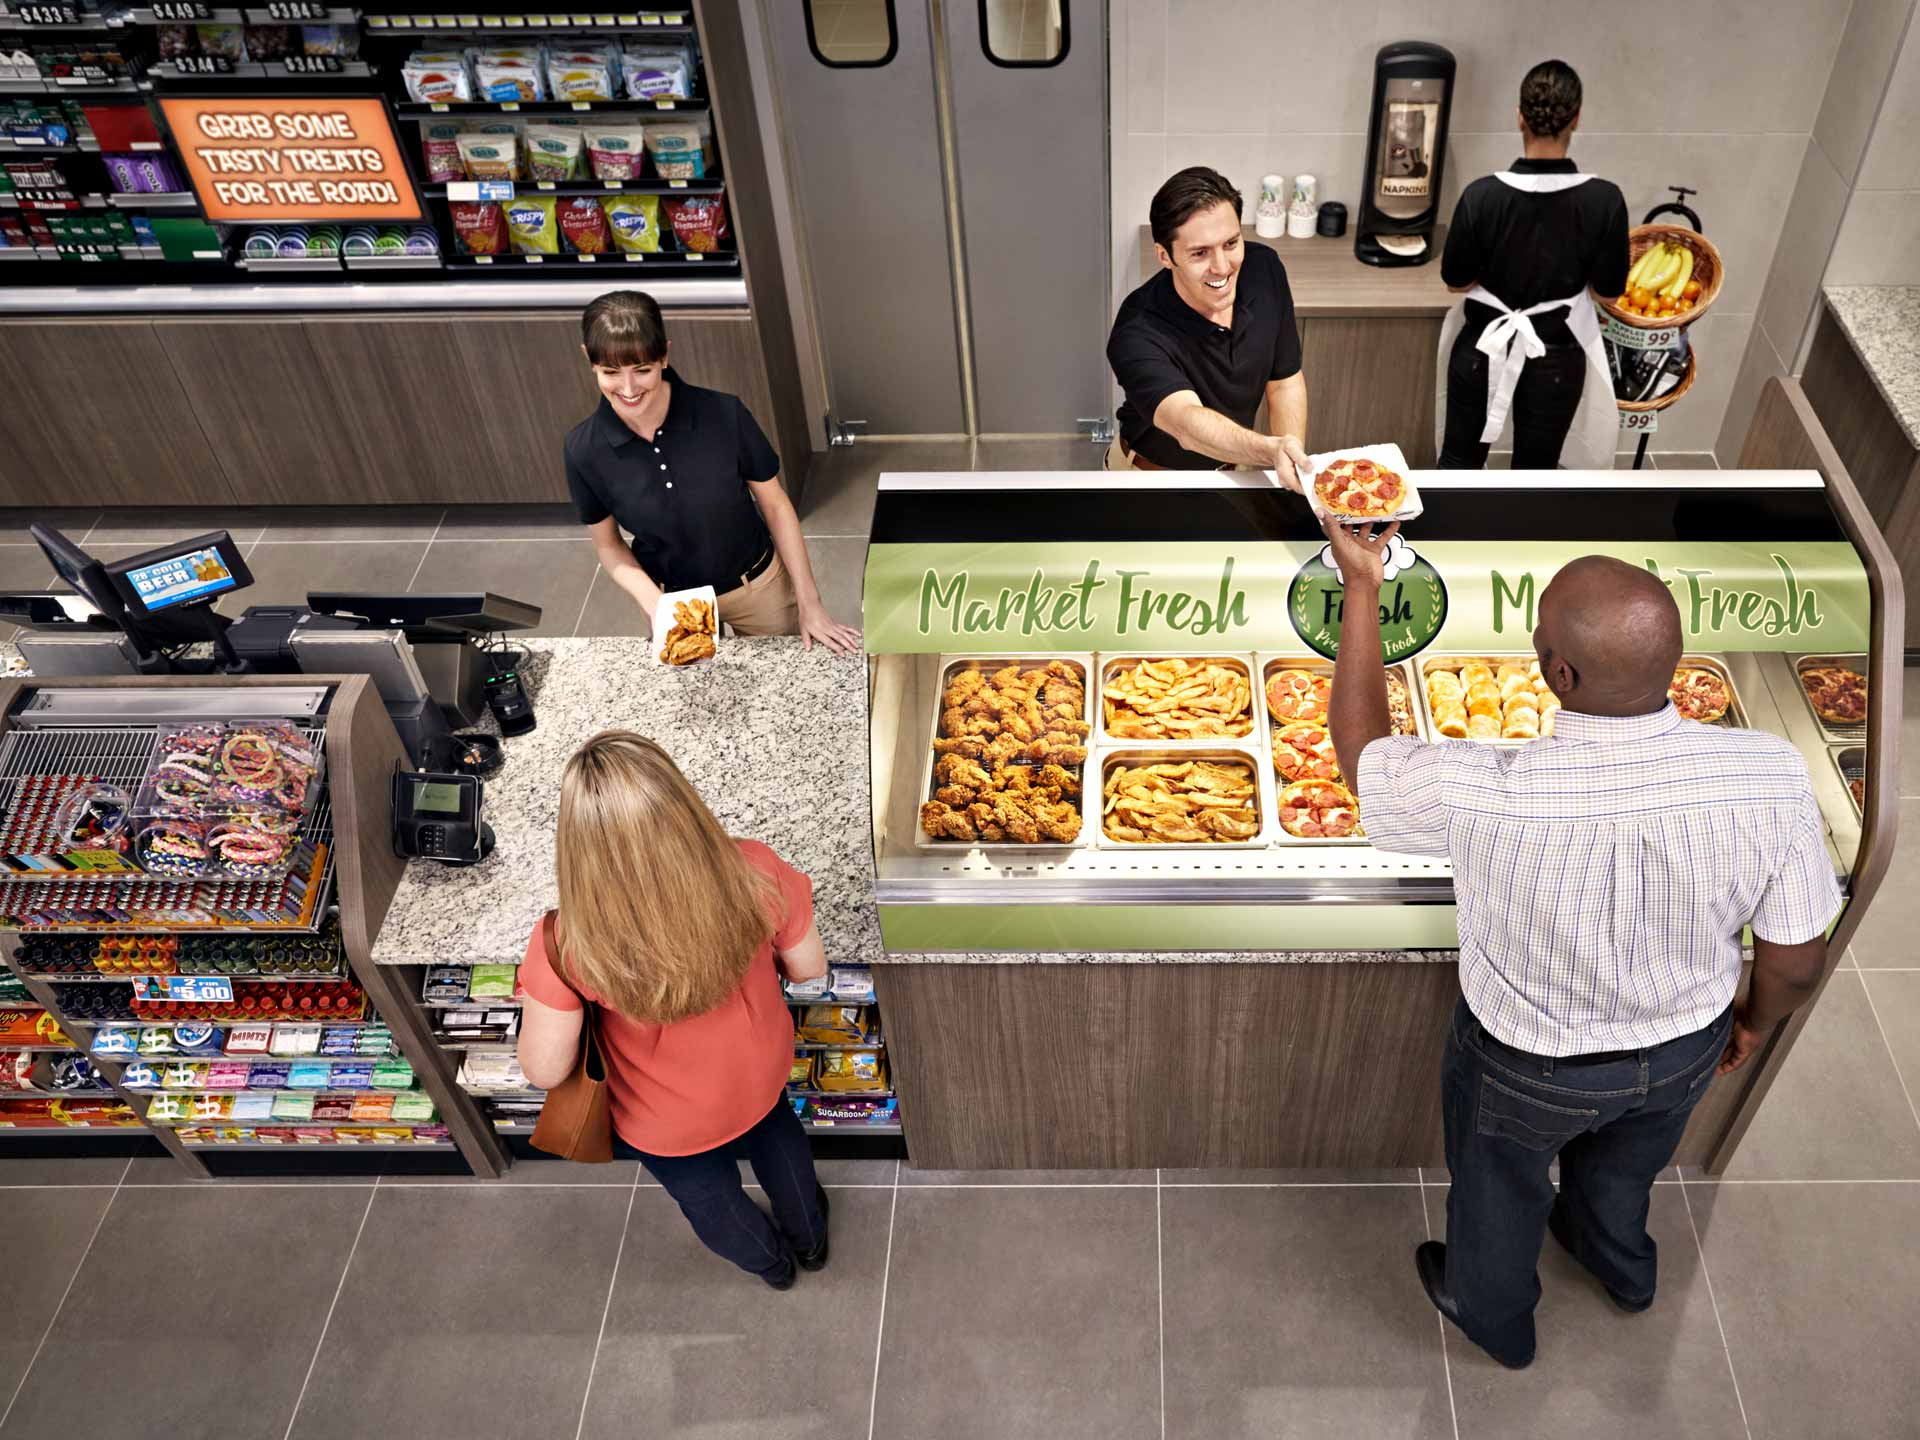 Overhead view of gas station checkout. Atlanta based advertising photography